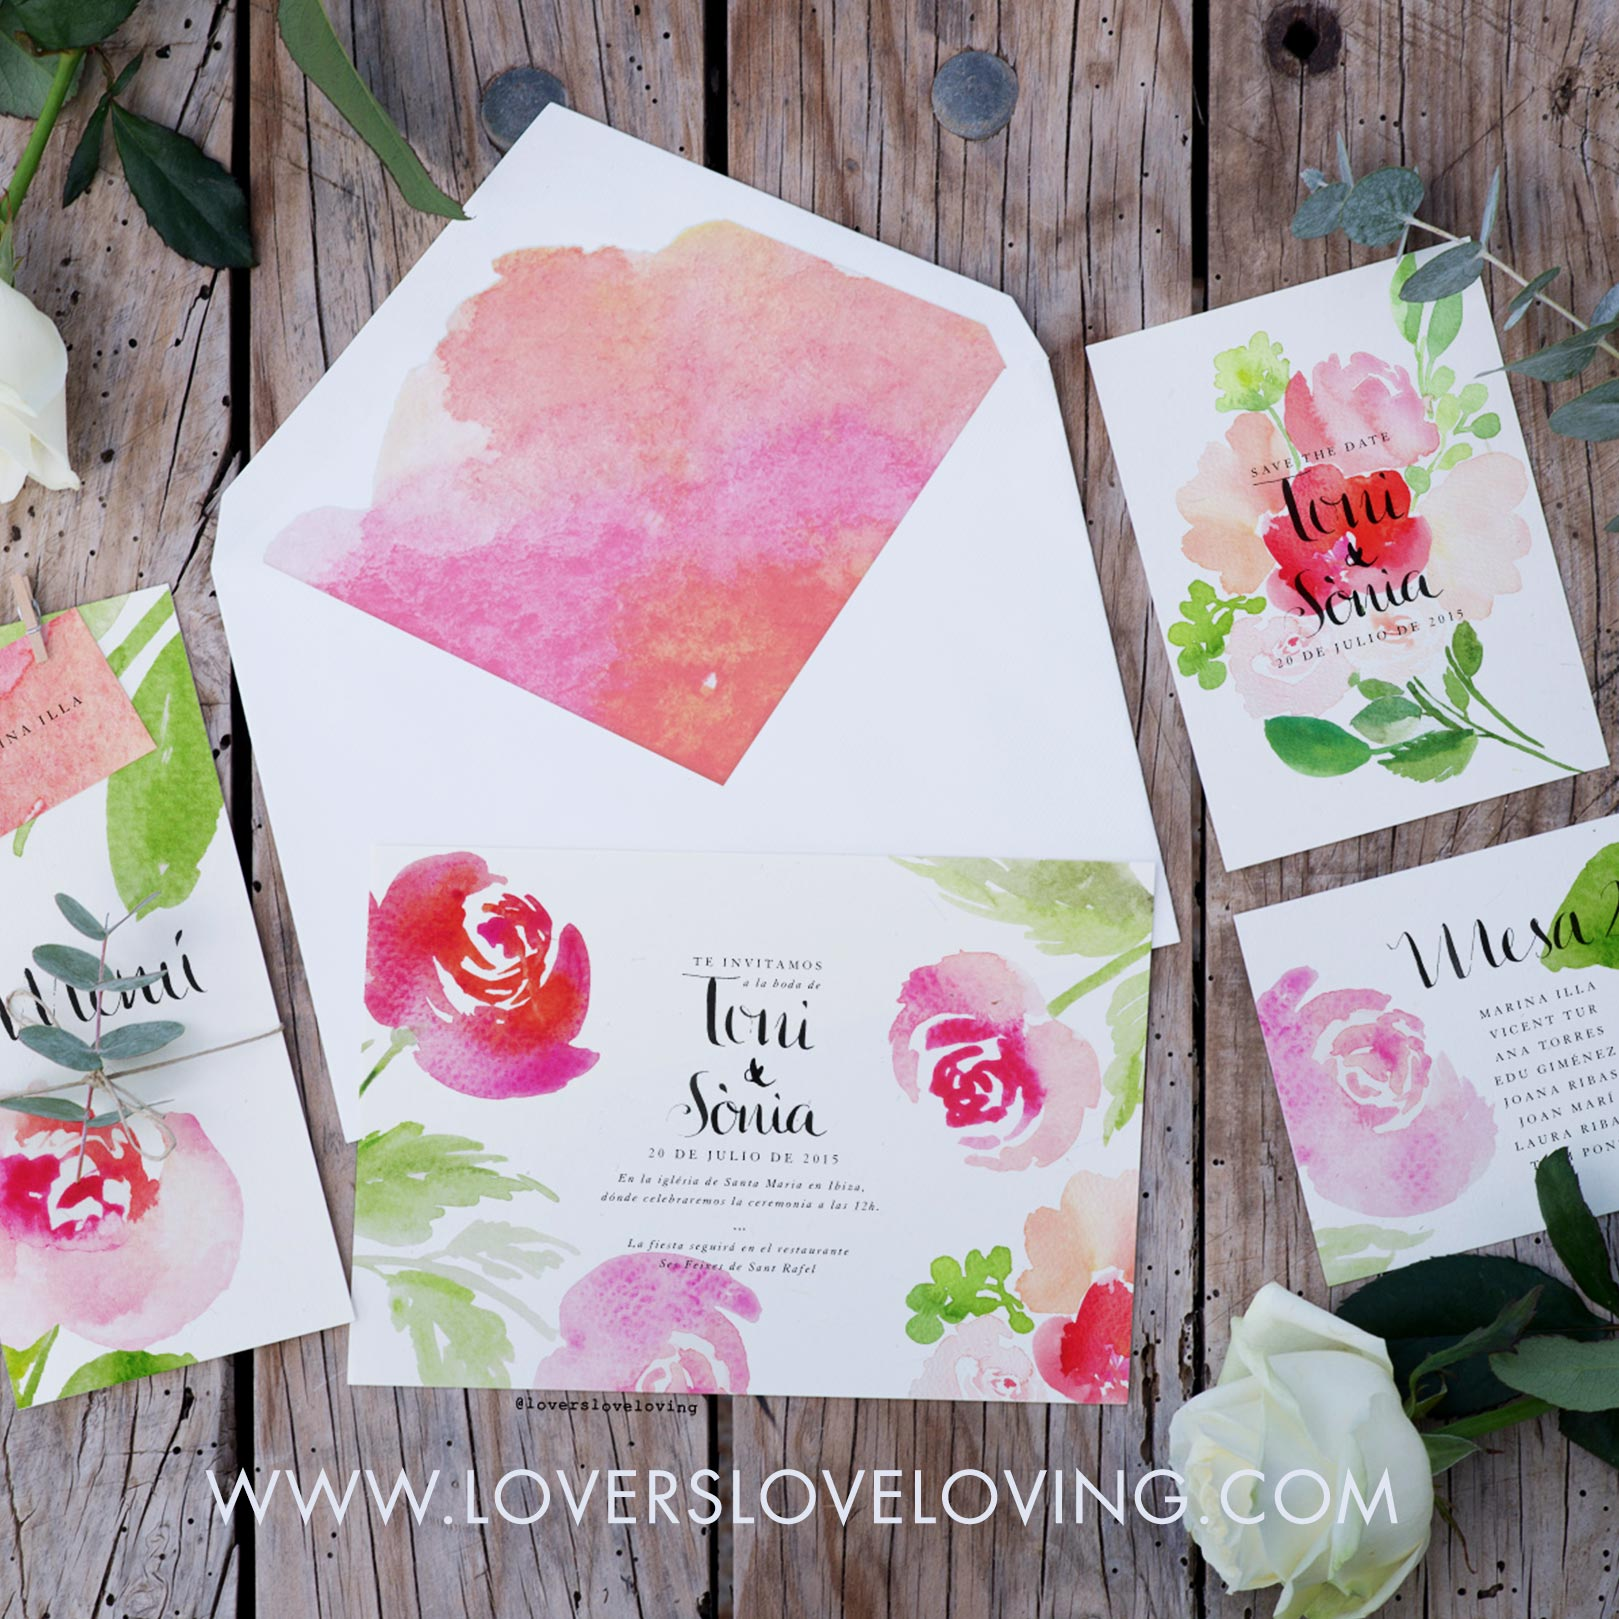 Watercolor wedding invitations designed by Claudia Orengo from Heartmade.es - Lovers Love Loving